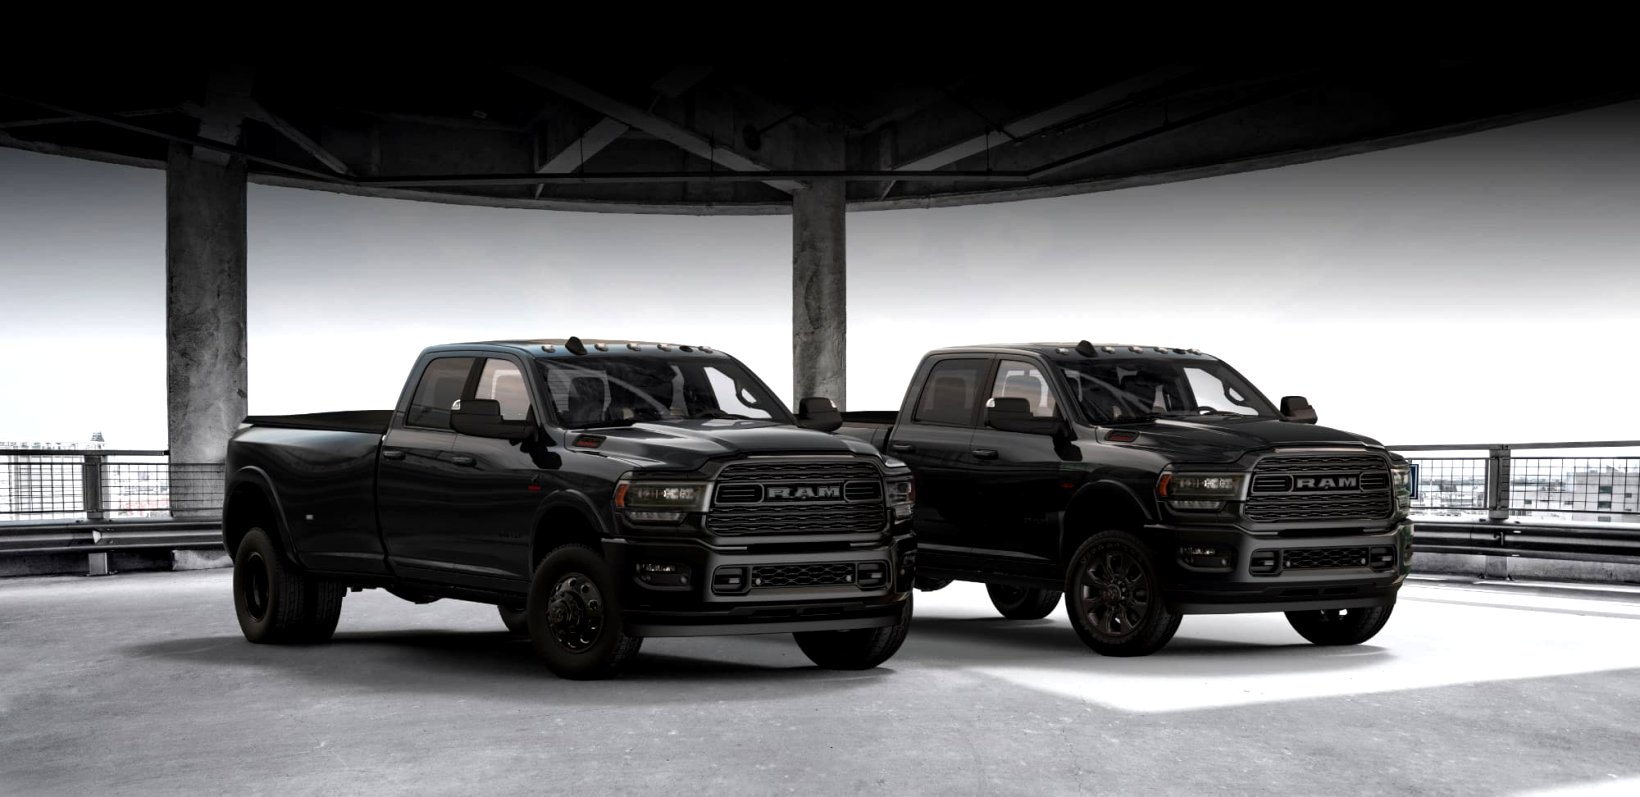 2020 dodge limited Release Date and Concept